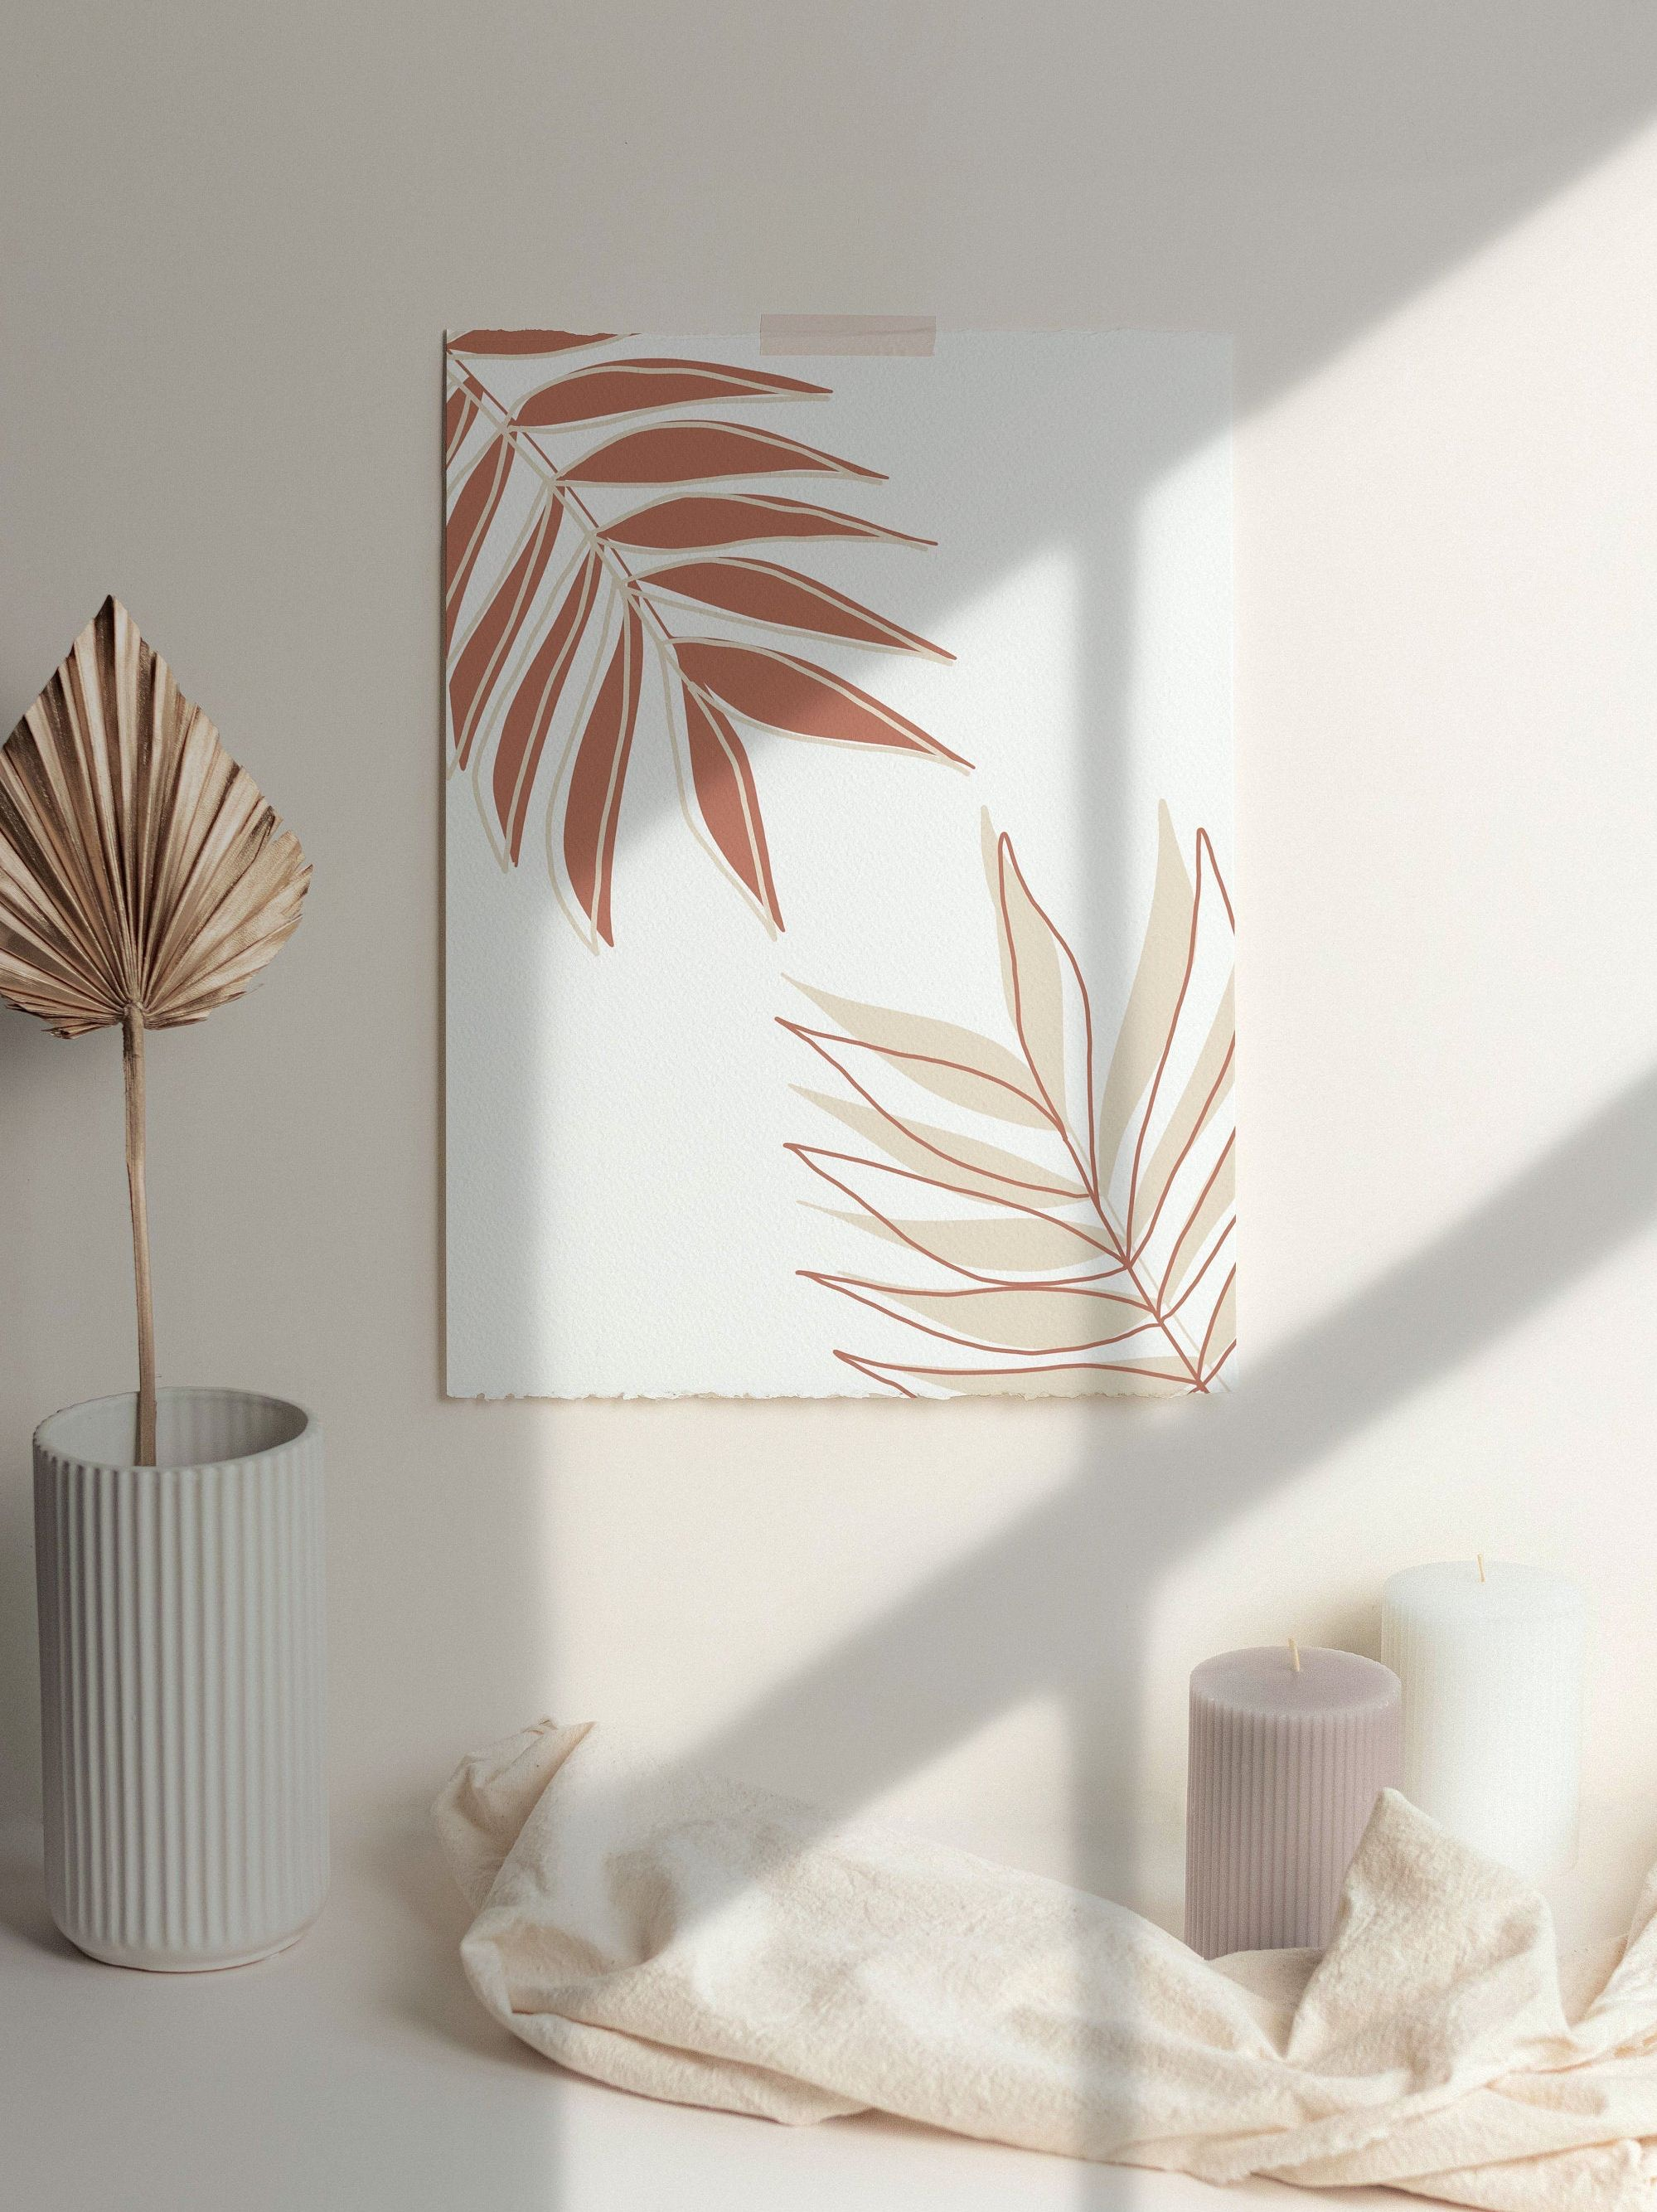 Read the full title Terracotta Palm Leaves, Wall Decor, Abstract Art Poster, Home Decor Wall Art, Printables, Digital Printable Wall Art, Instant Download